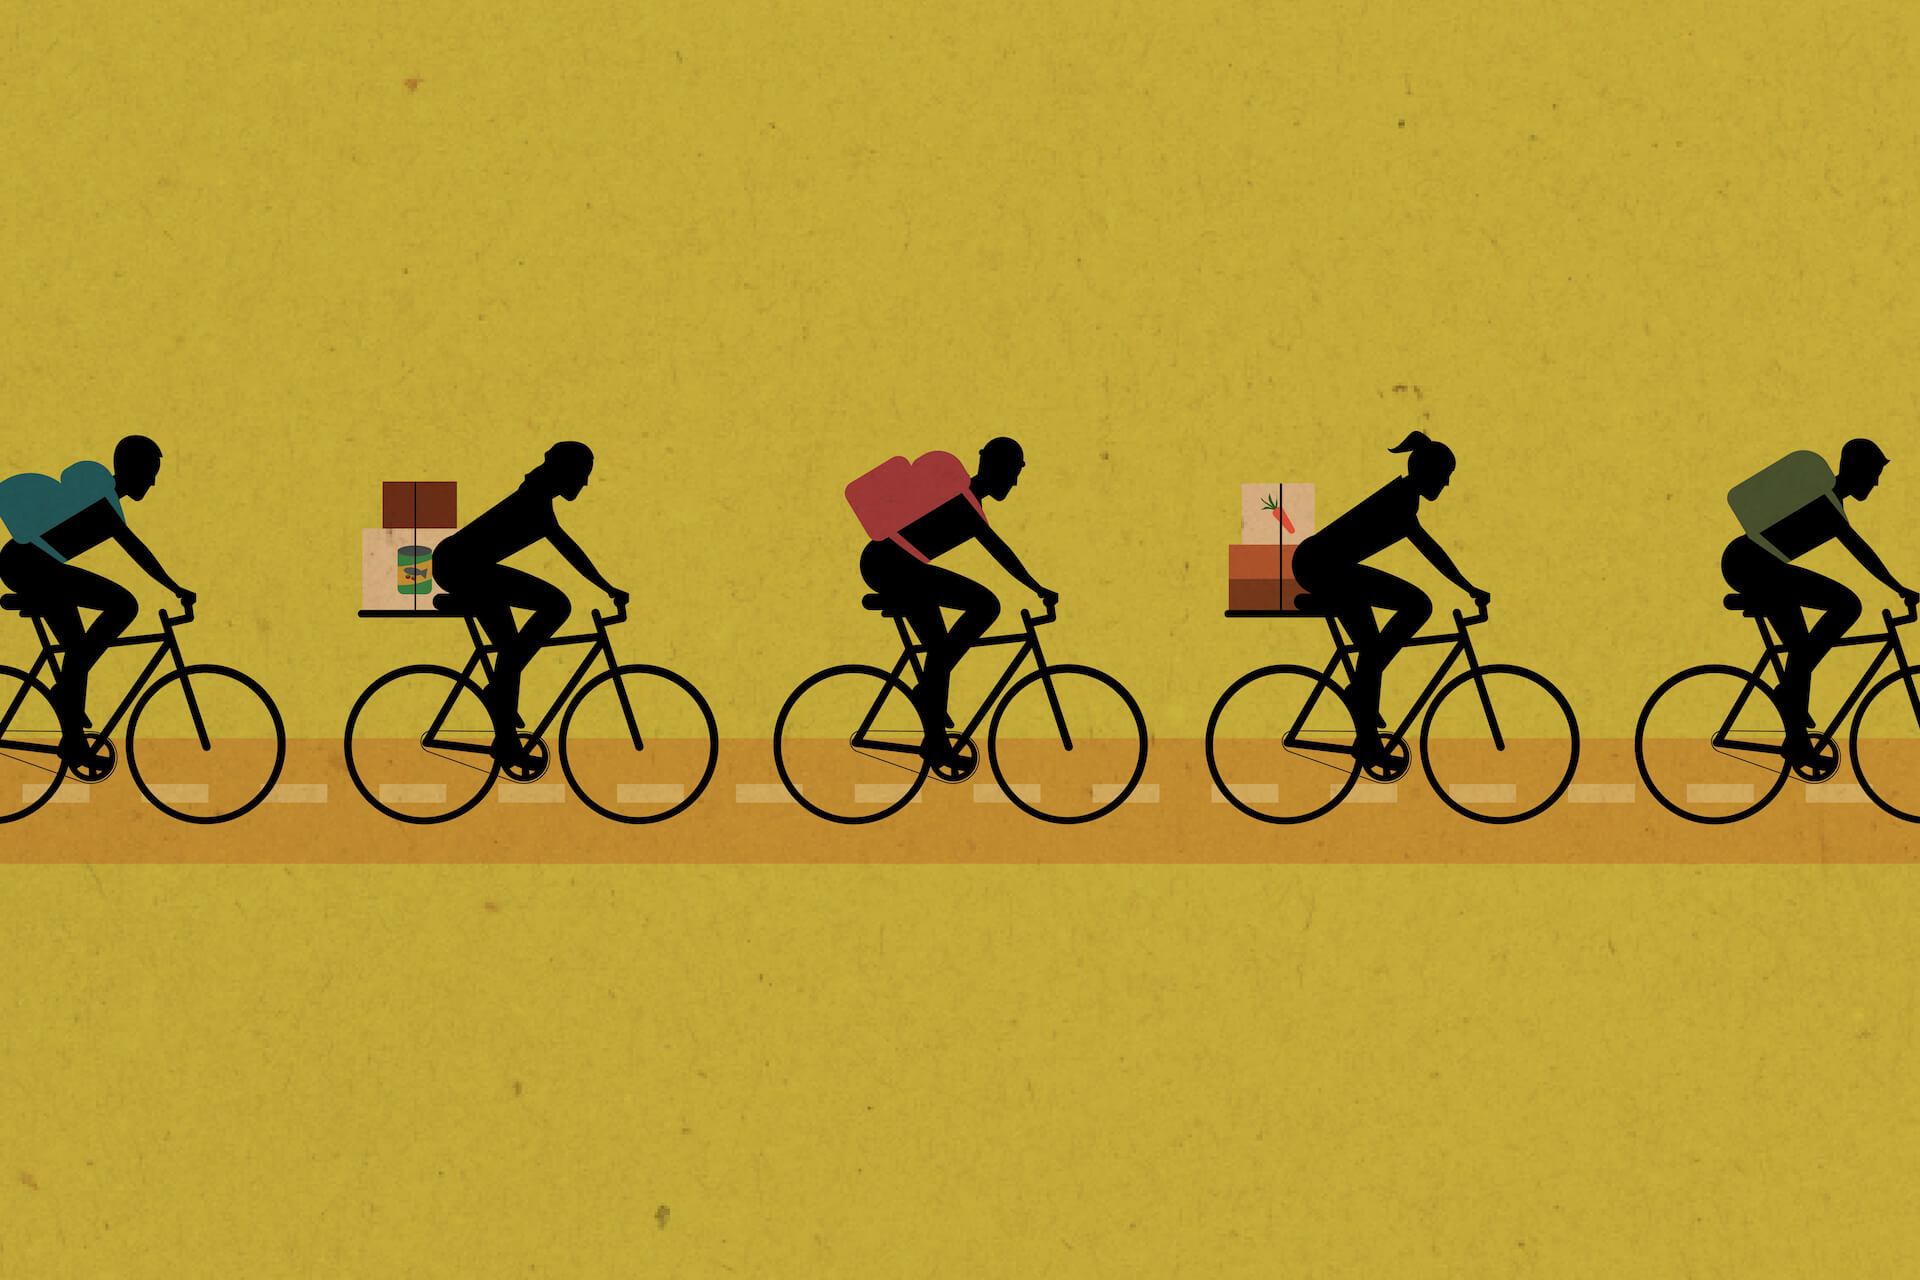 In Metro Manila, cyclists are bringing goods to community pantries